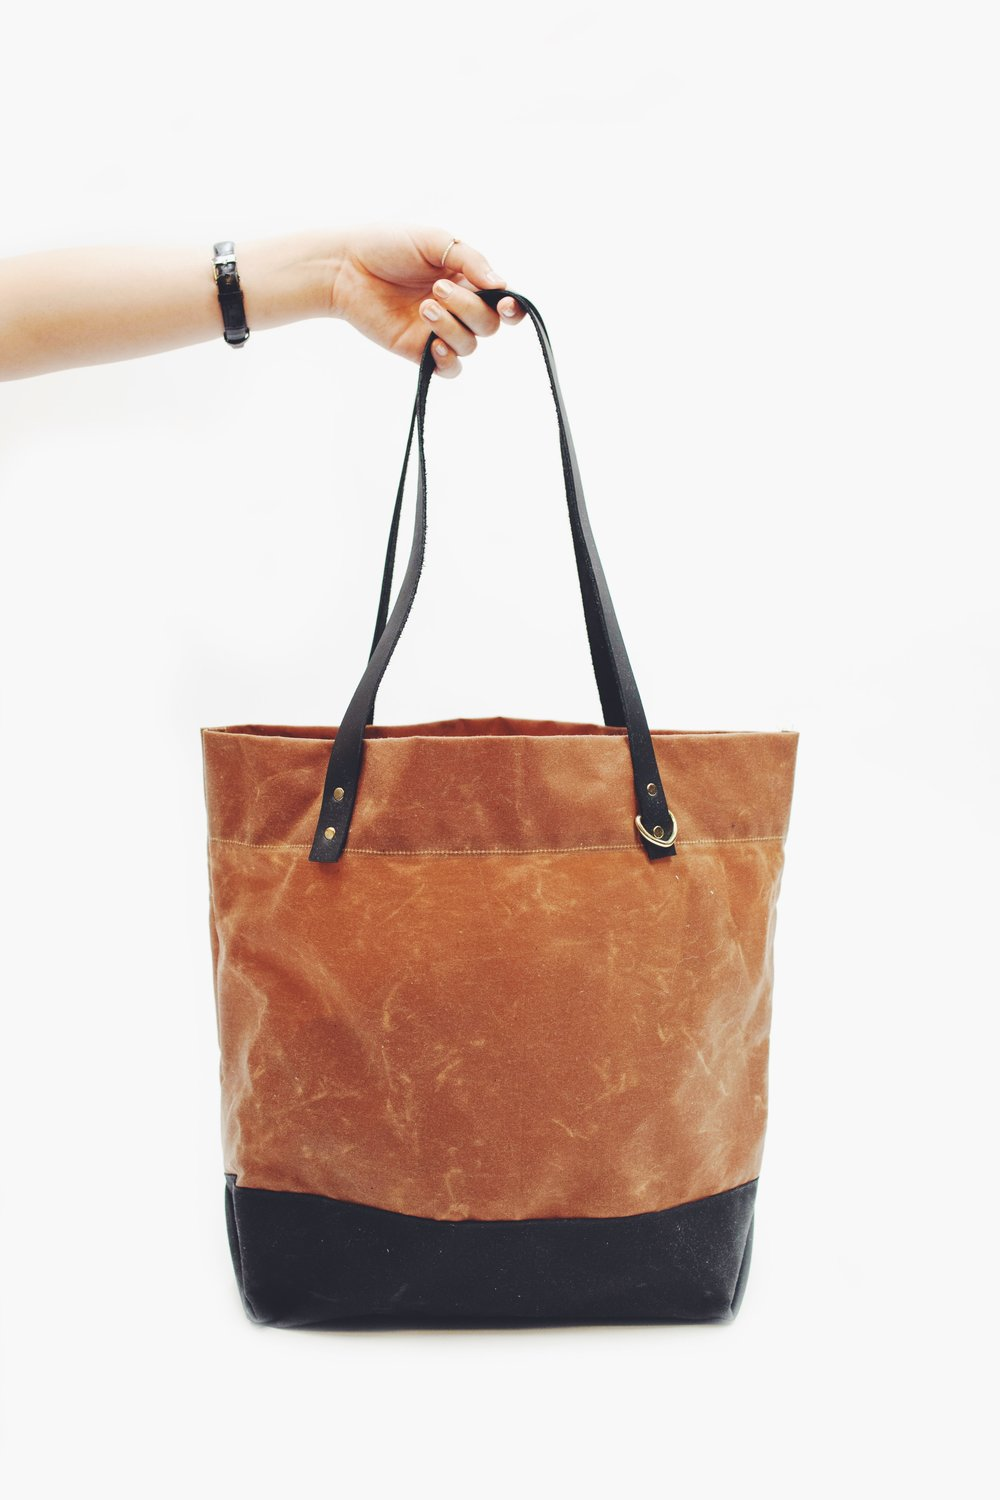 Portsmith Tote Online Class